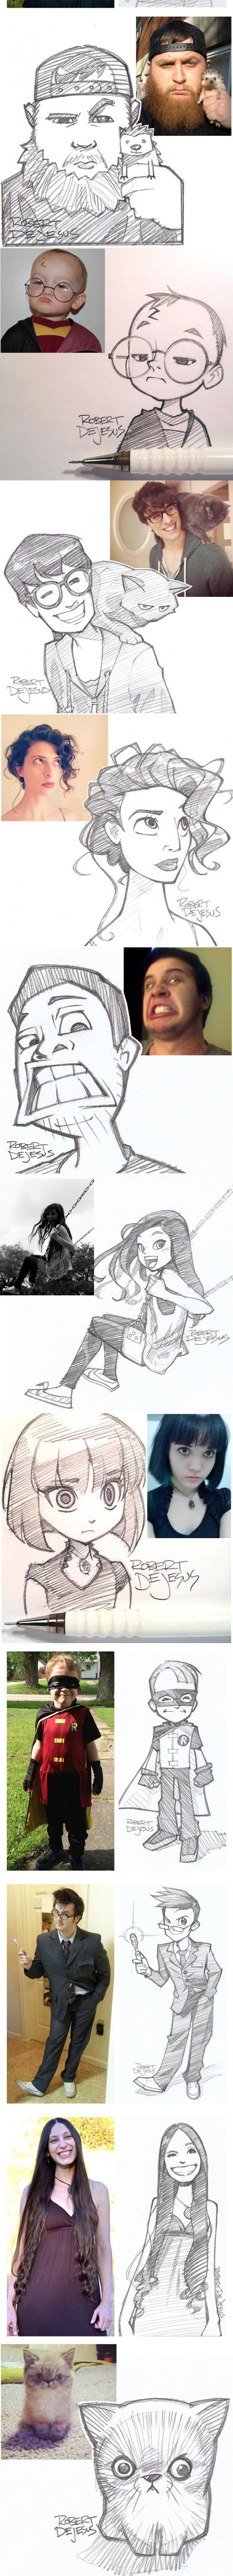 amazing character sketches.